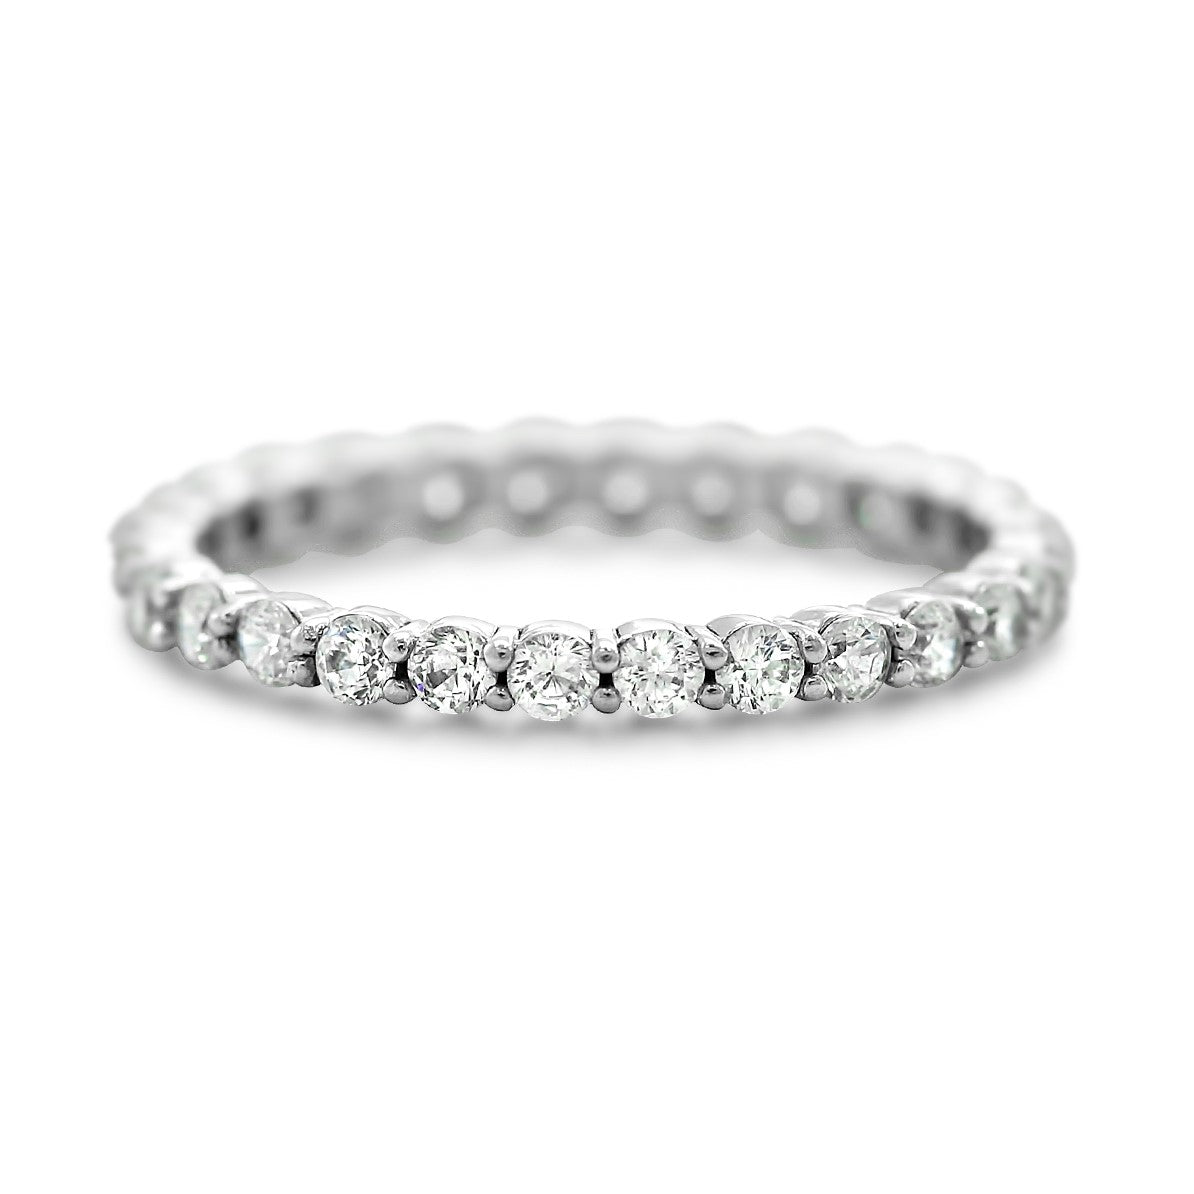 2.0mm eternity band ~0.87tcw diamonds available in platinum or 14k yellow, white or rose gold